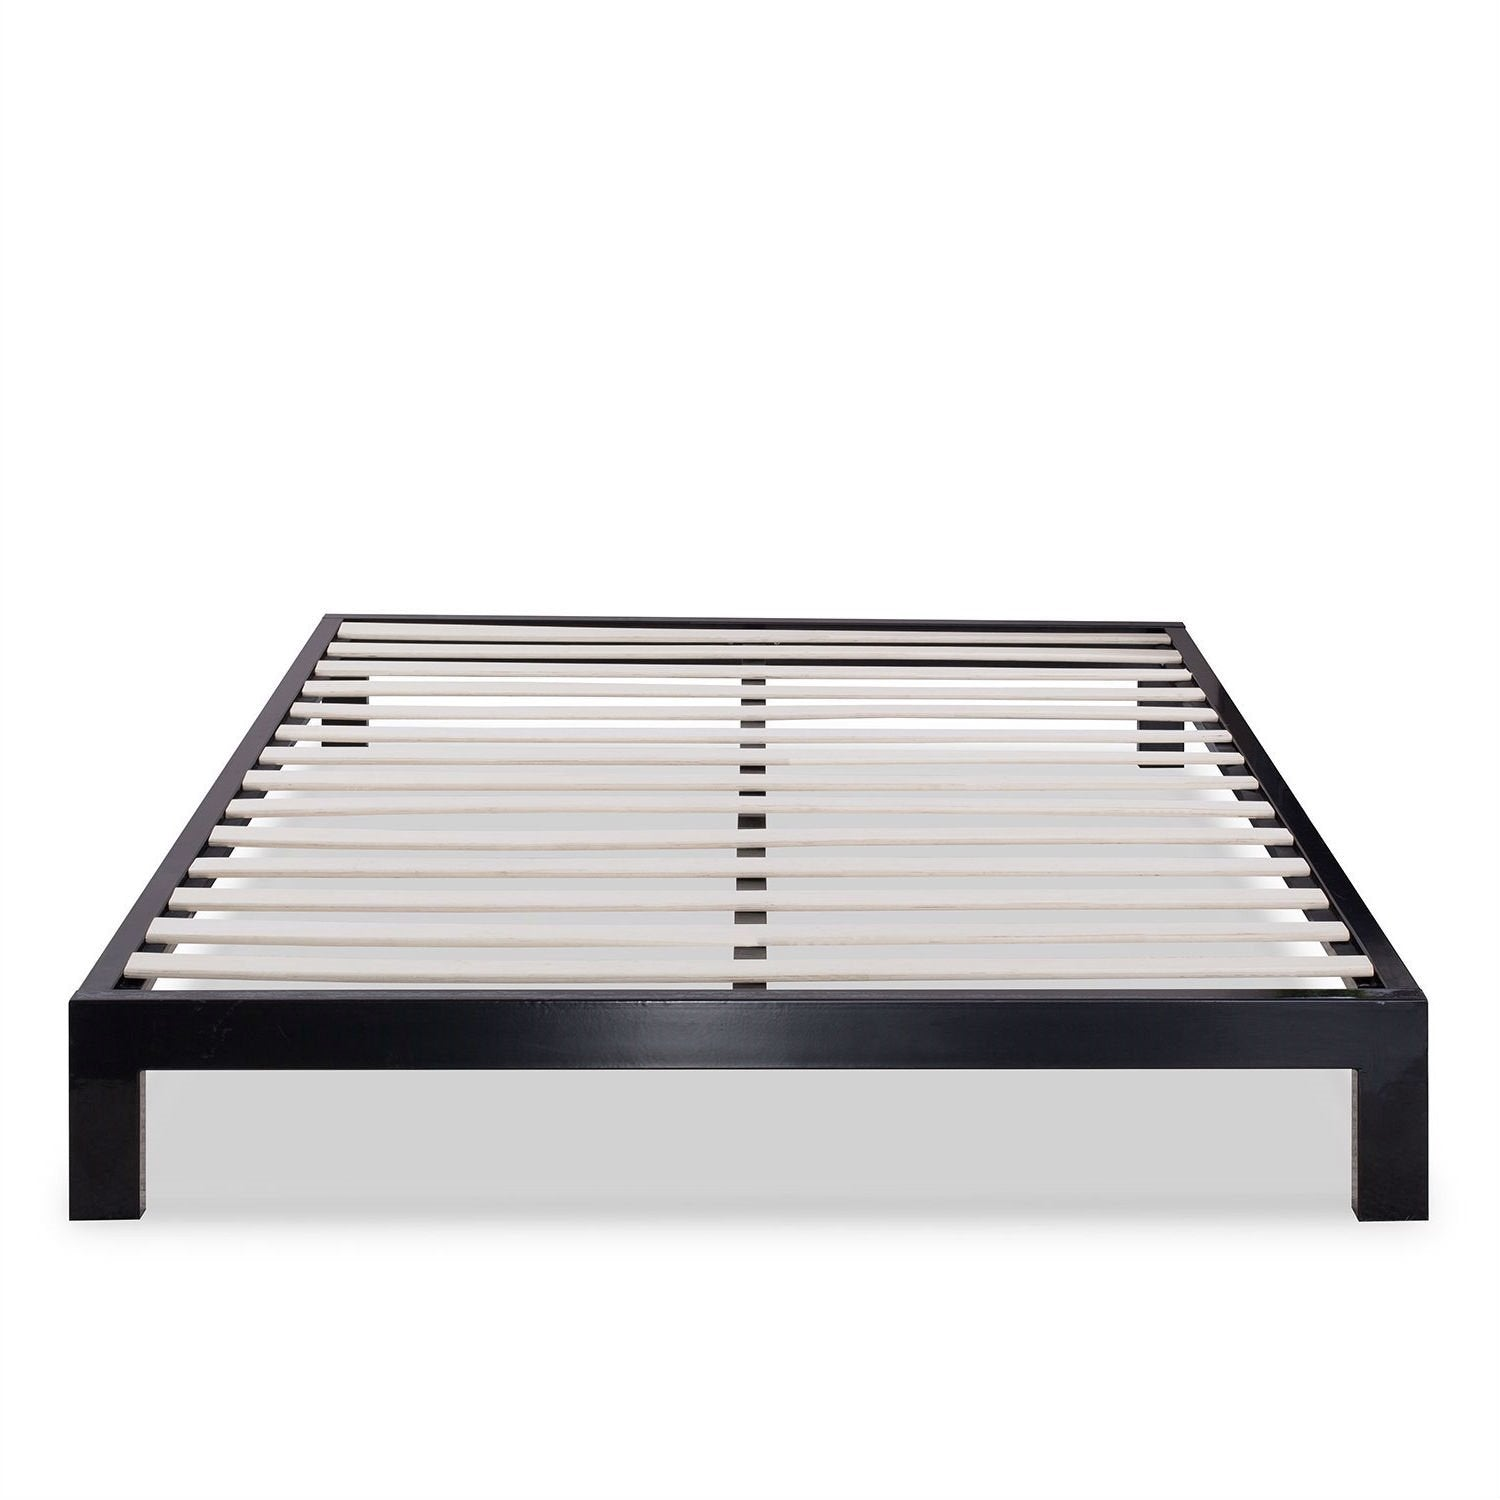 Full size Contemporary Black Metal Platform Bed with Wooden Slats